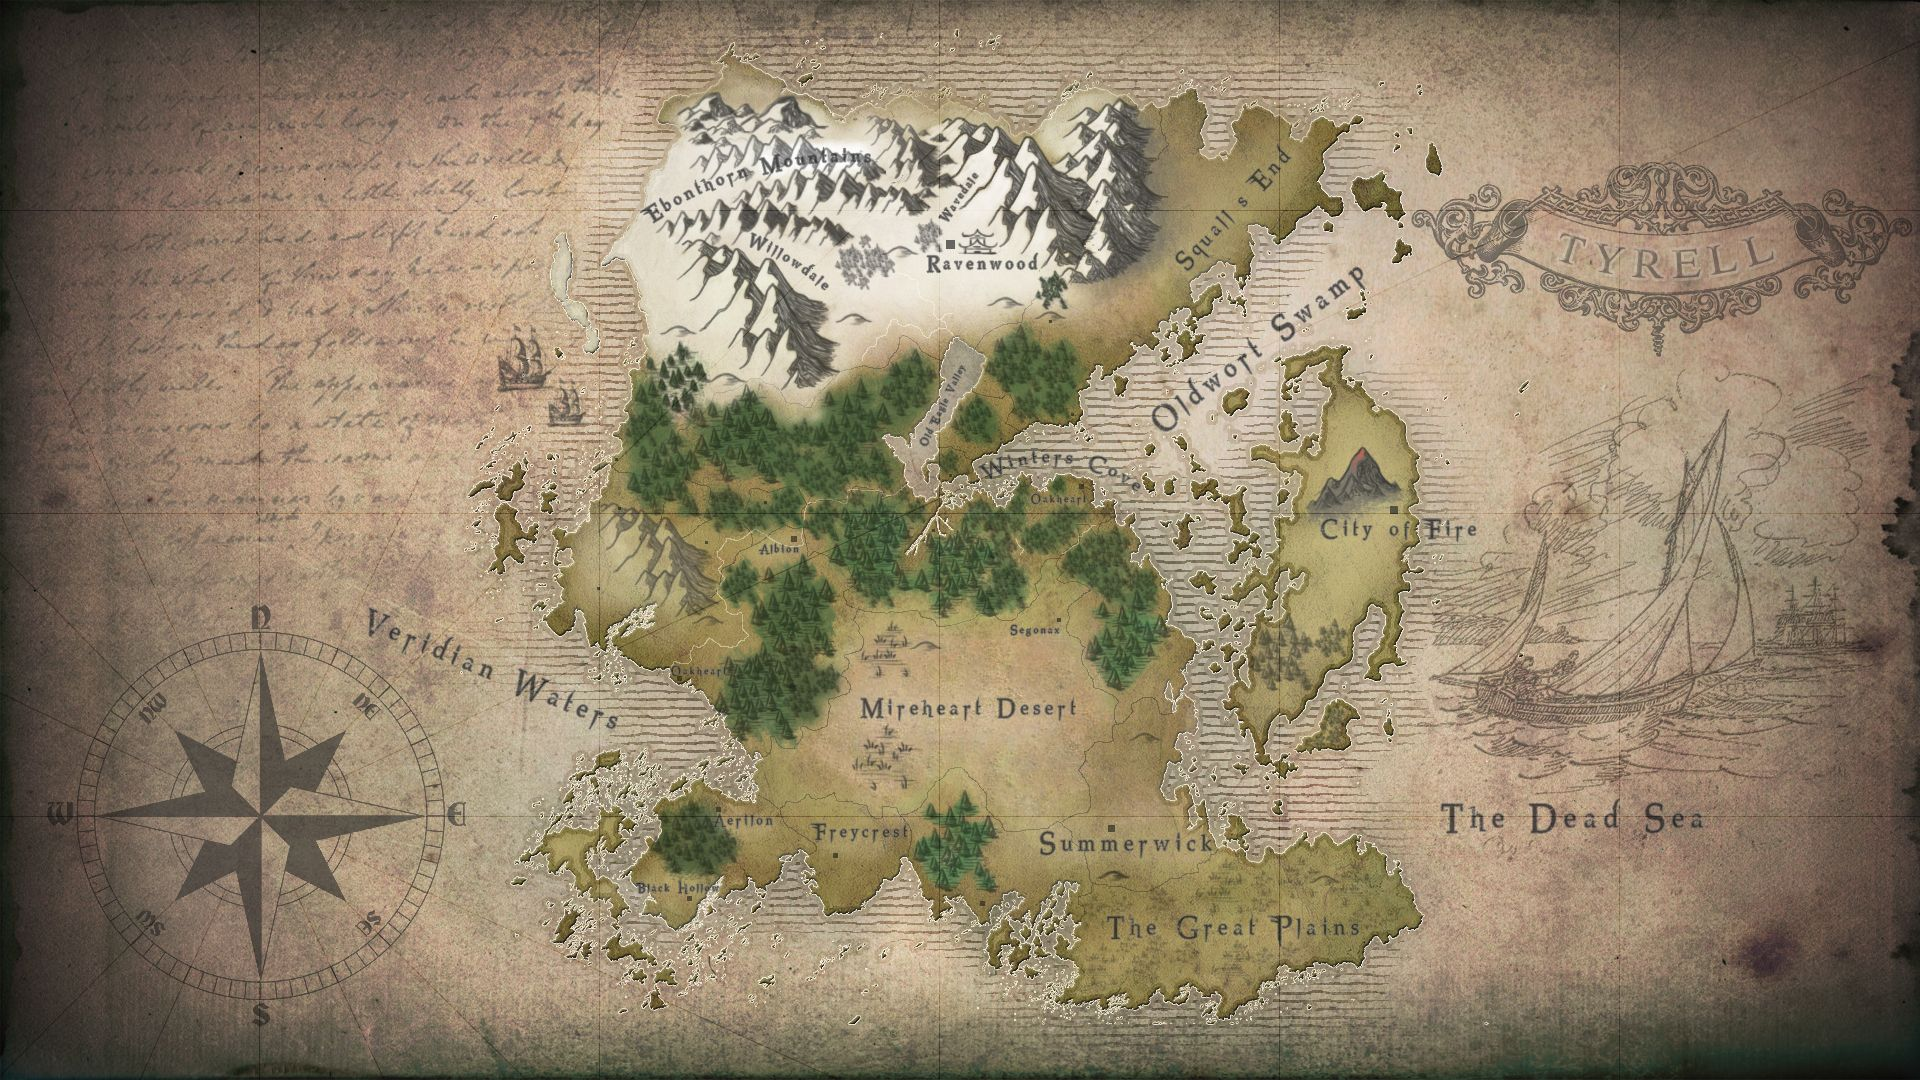 World painter map turned into fantasy minecraft map visual stuff minecraft map created in world painter and then turned into a rpg style colored map minecraft rpg world map gumiabroncs Gallery